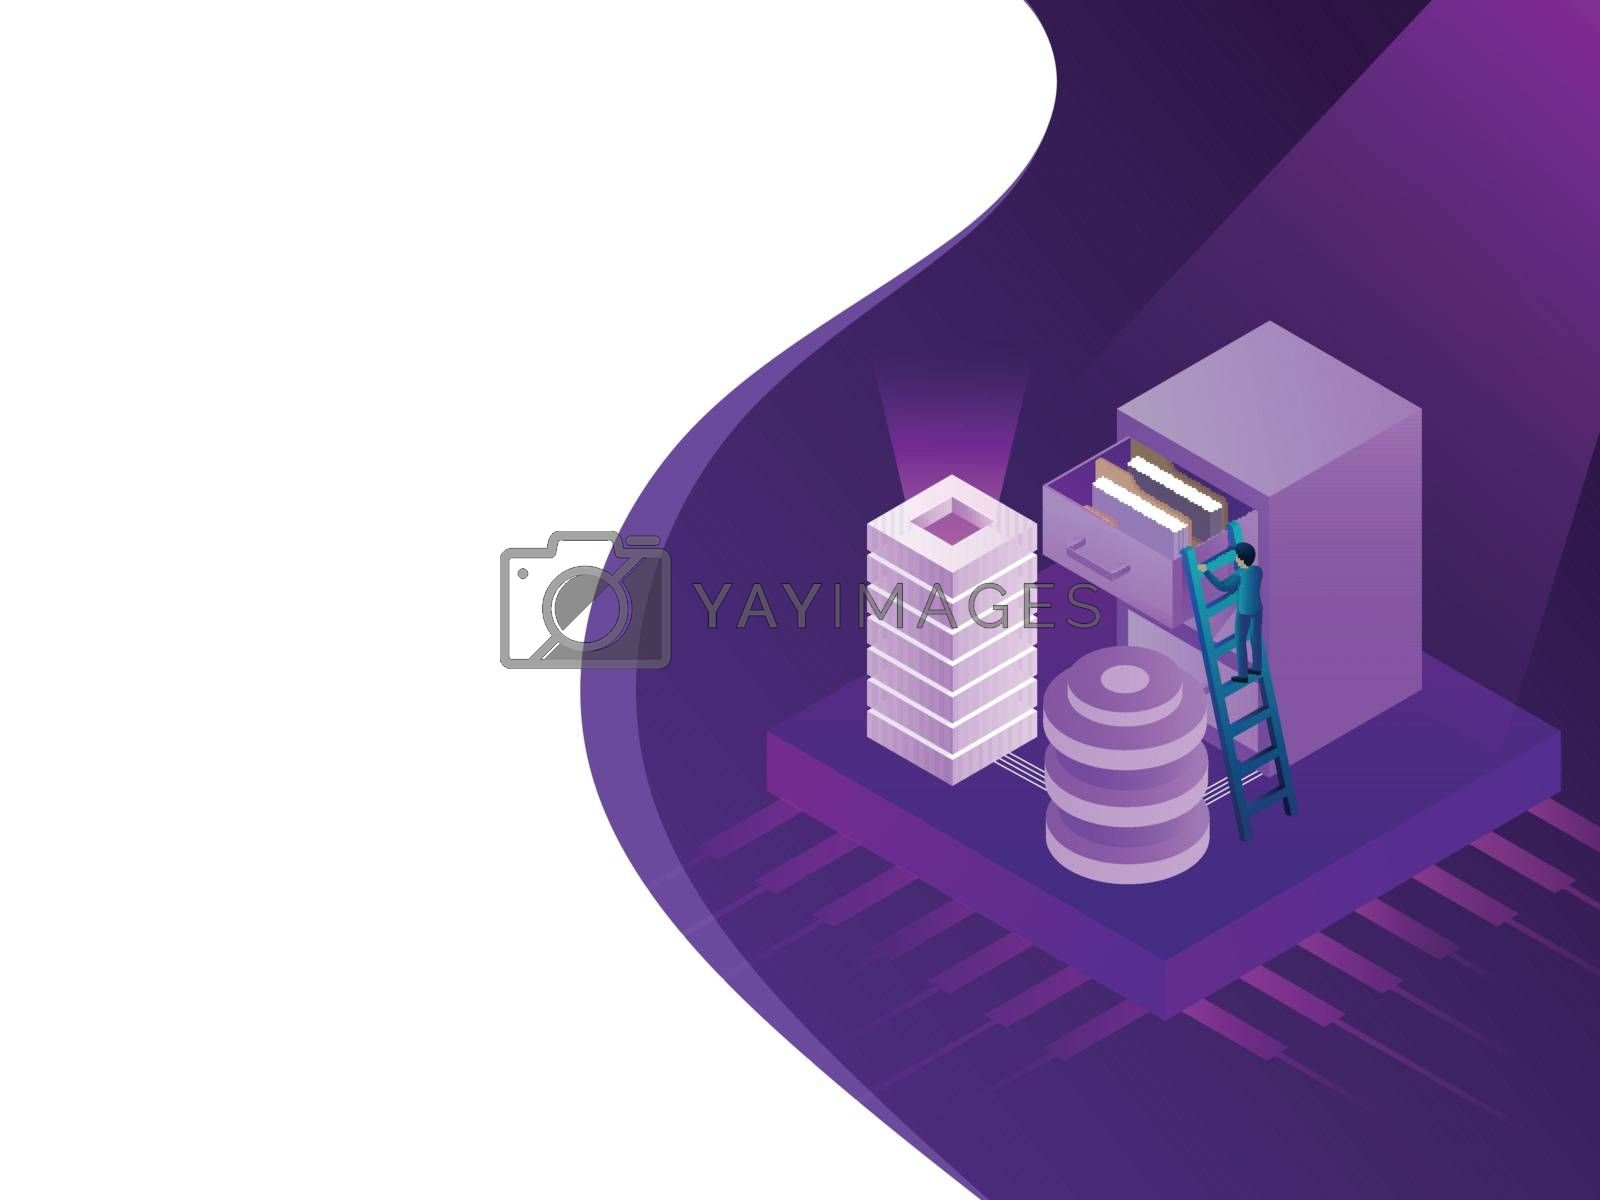 Isometric illustration of processor chip with web servers, miniature business people maintaining file folder for data center or storage concept.